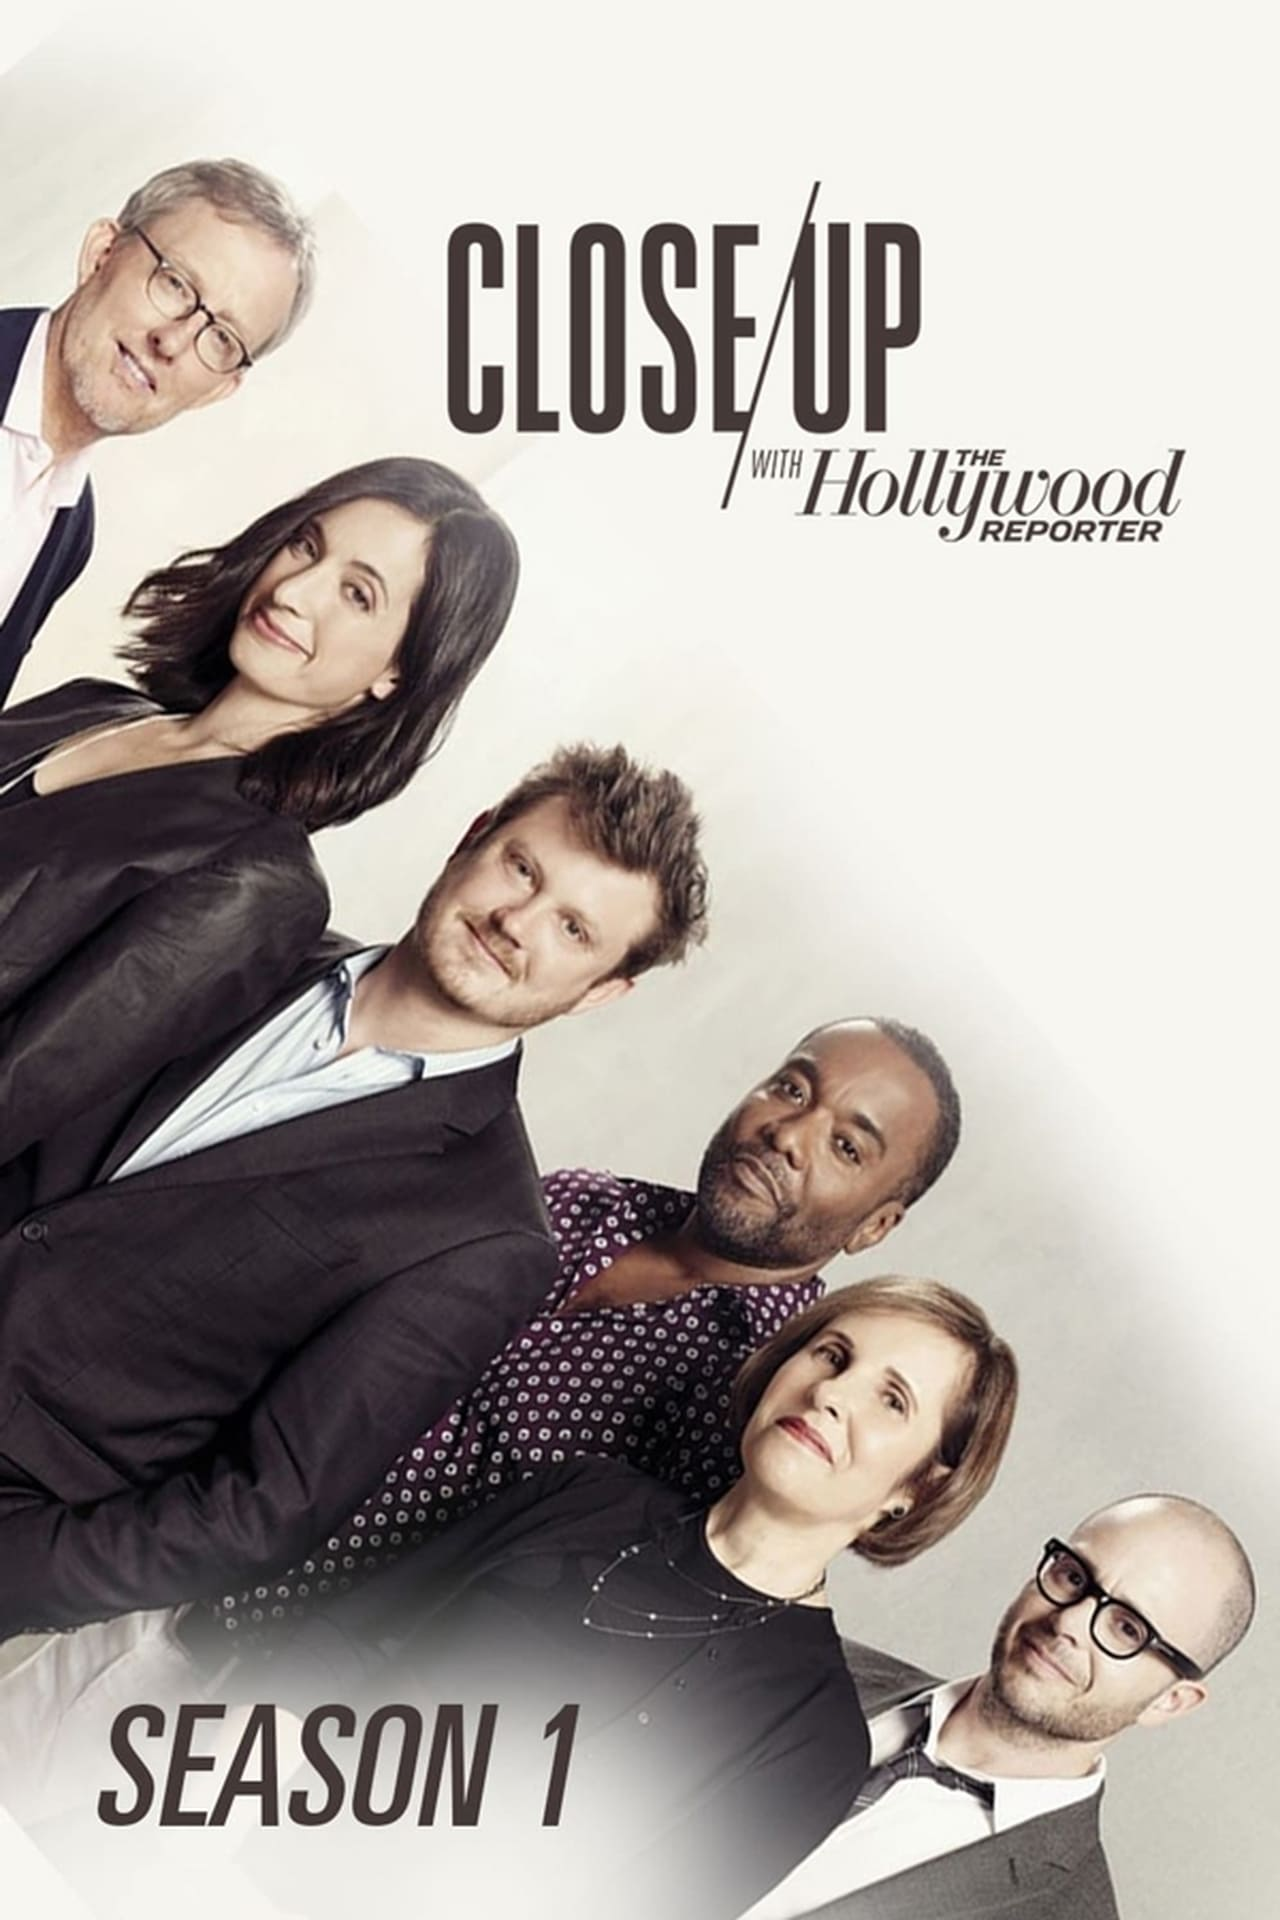 Watch Close Up With The Hollywood Reporter Season 1 Online